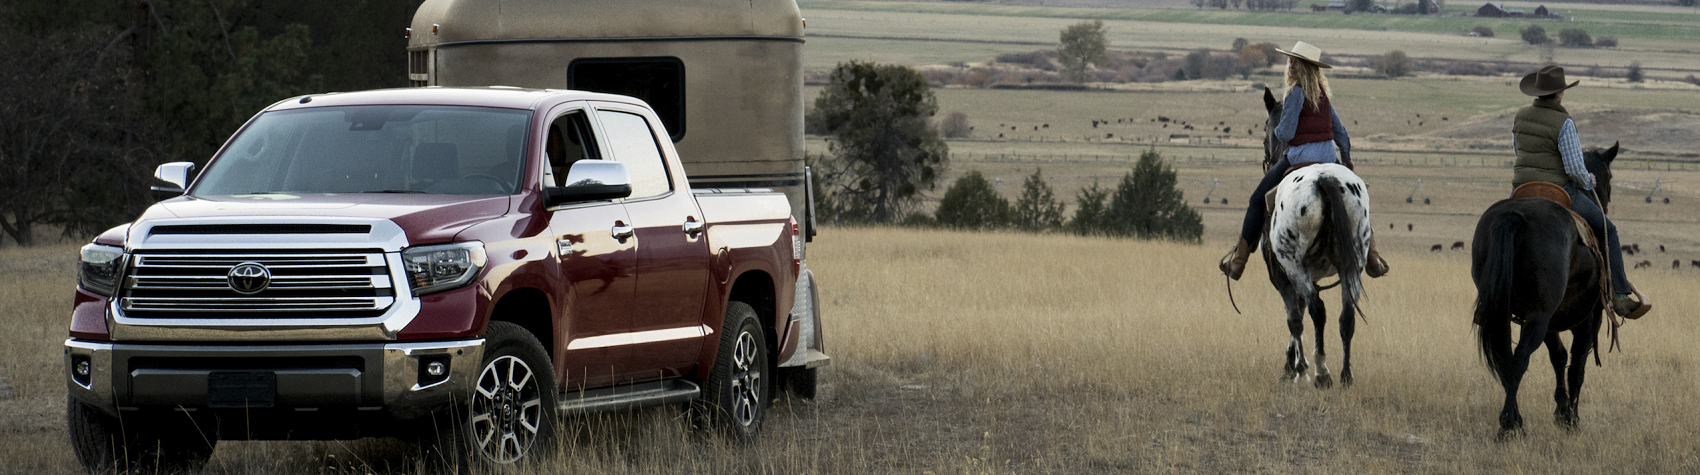 Toyota Tundra Towing Features